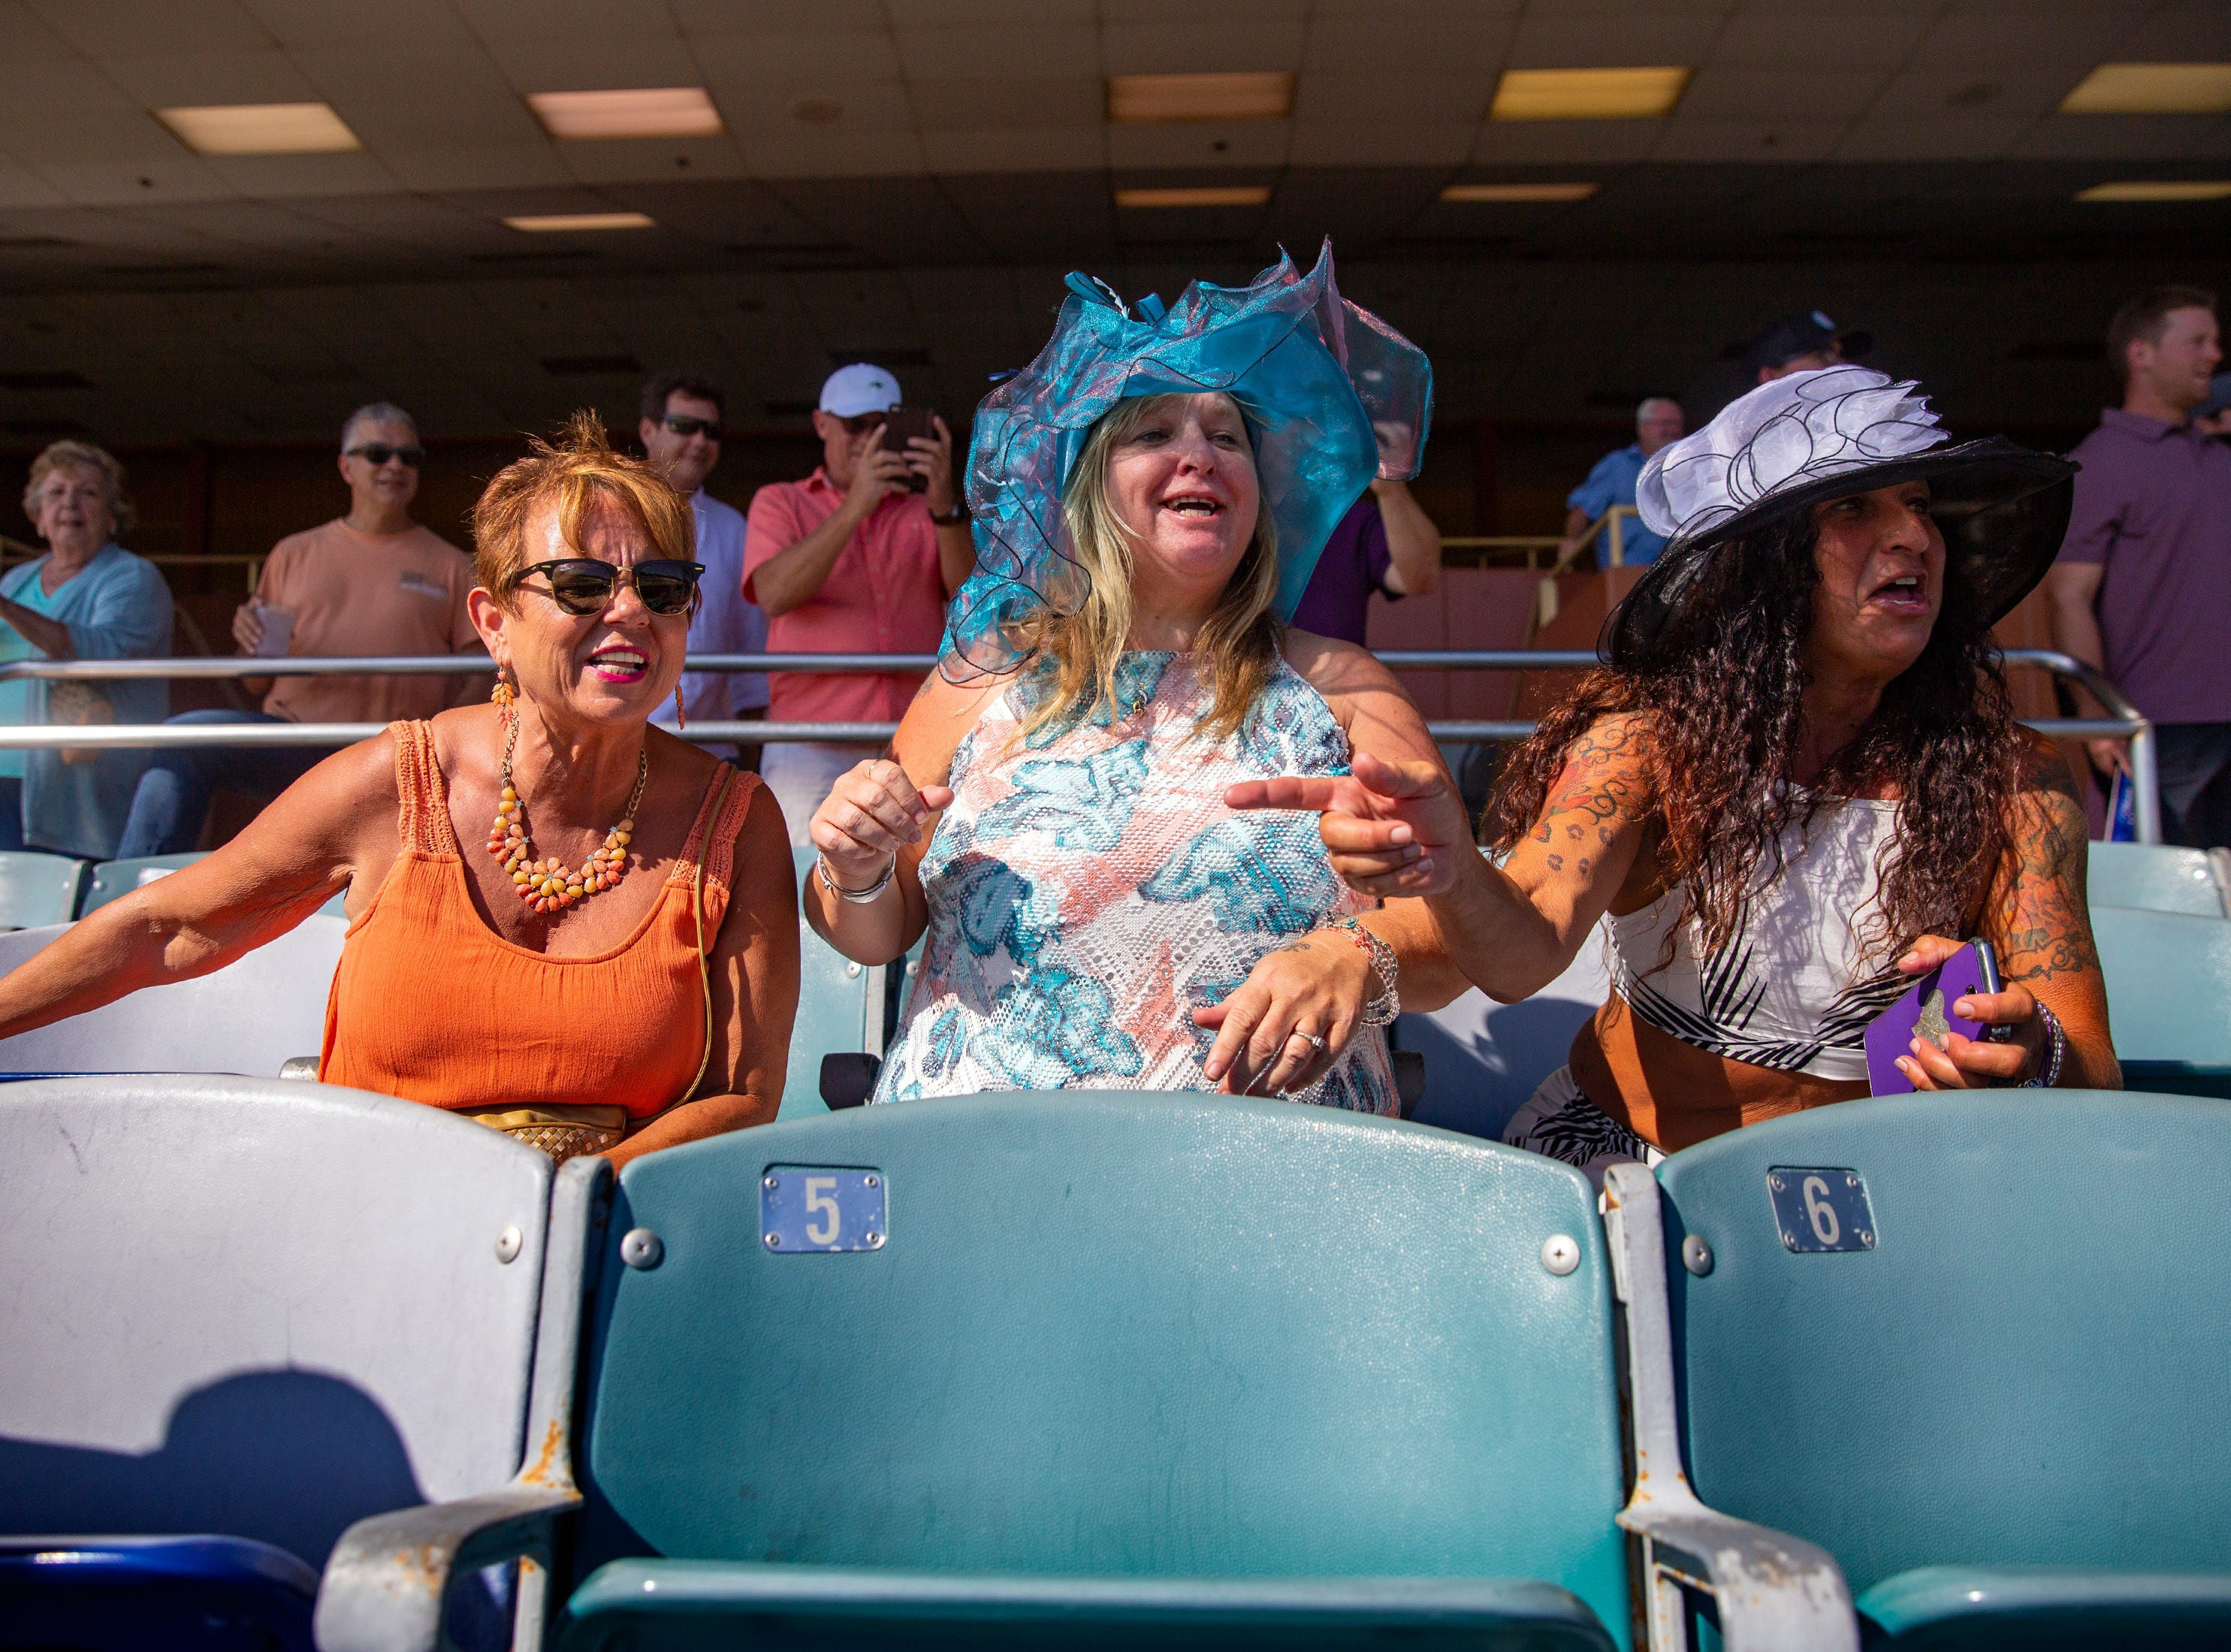 Sharon Workley, left, Leeanna Parsons and Venassa Cordovano cheer on their dog during a race, Saturday, May 4, 2019, at Naples Fort Myers Greyhound Racing and Poker in Bonita Springs.